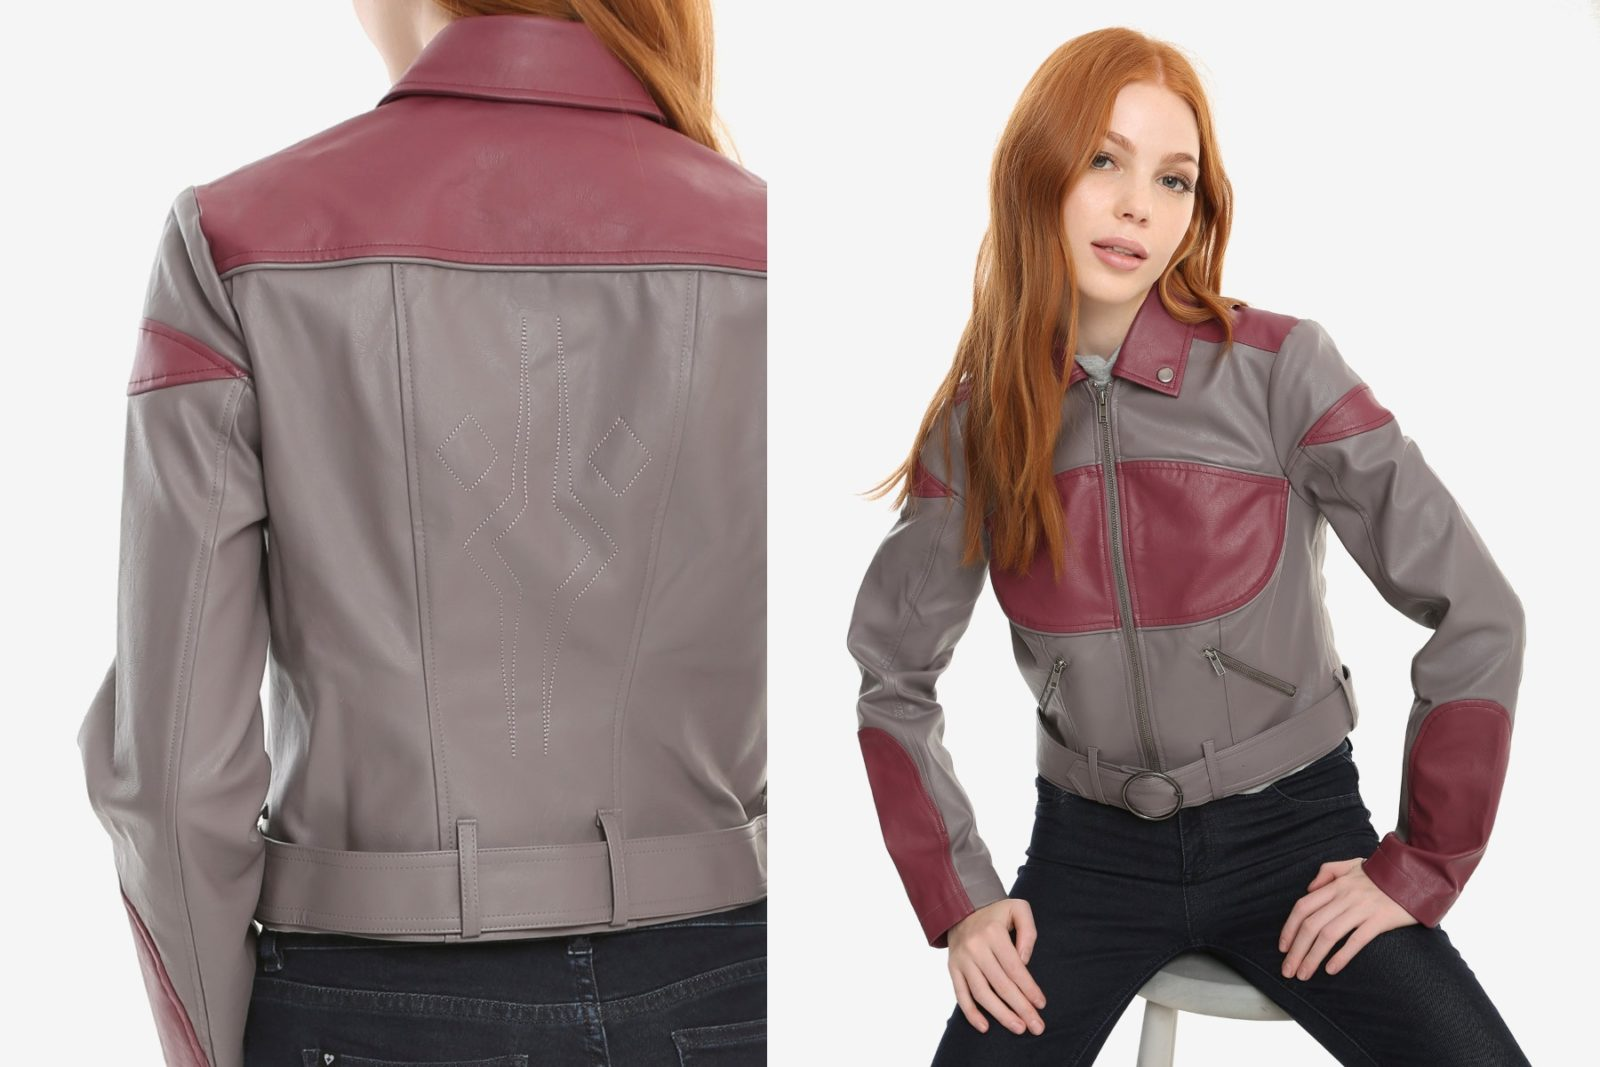 Her Universe Ahsoka Tano Faux Leather Jacket